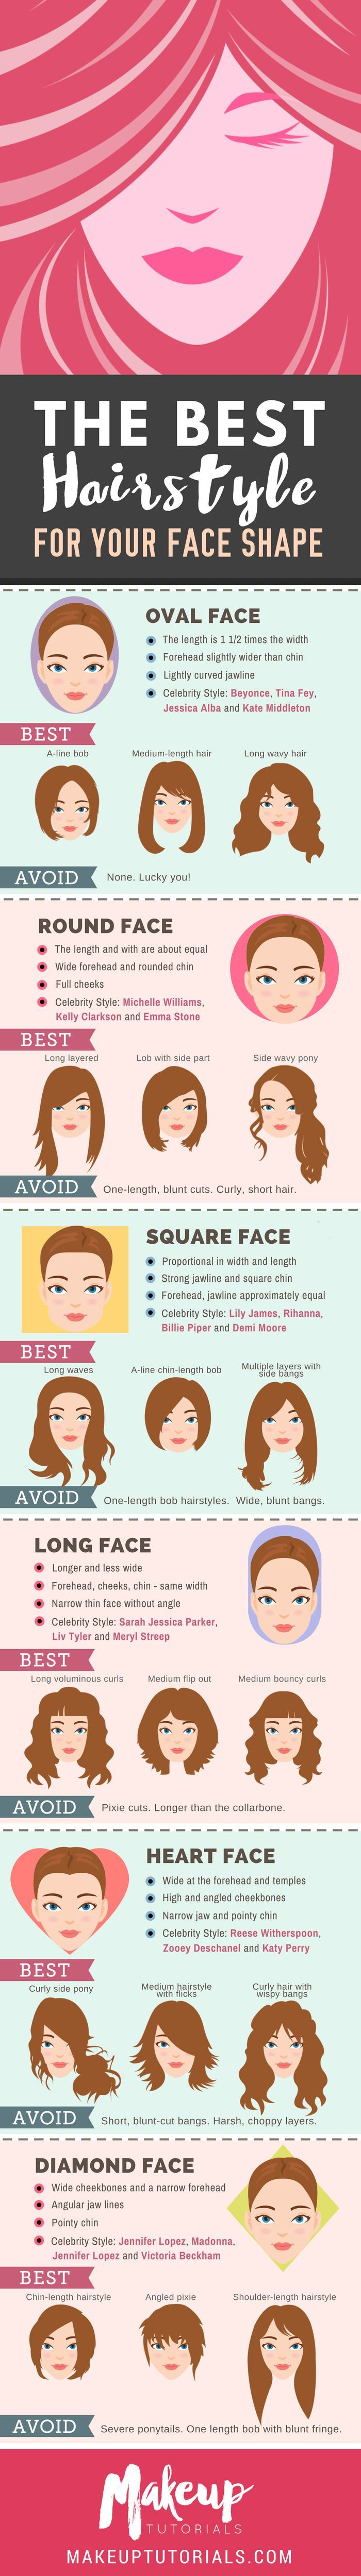 17 Best ideas about Best Haircuts on Pinterest | Brown ...